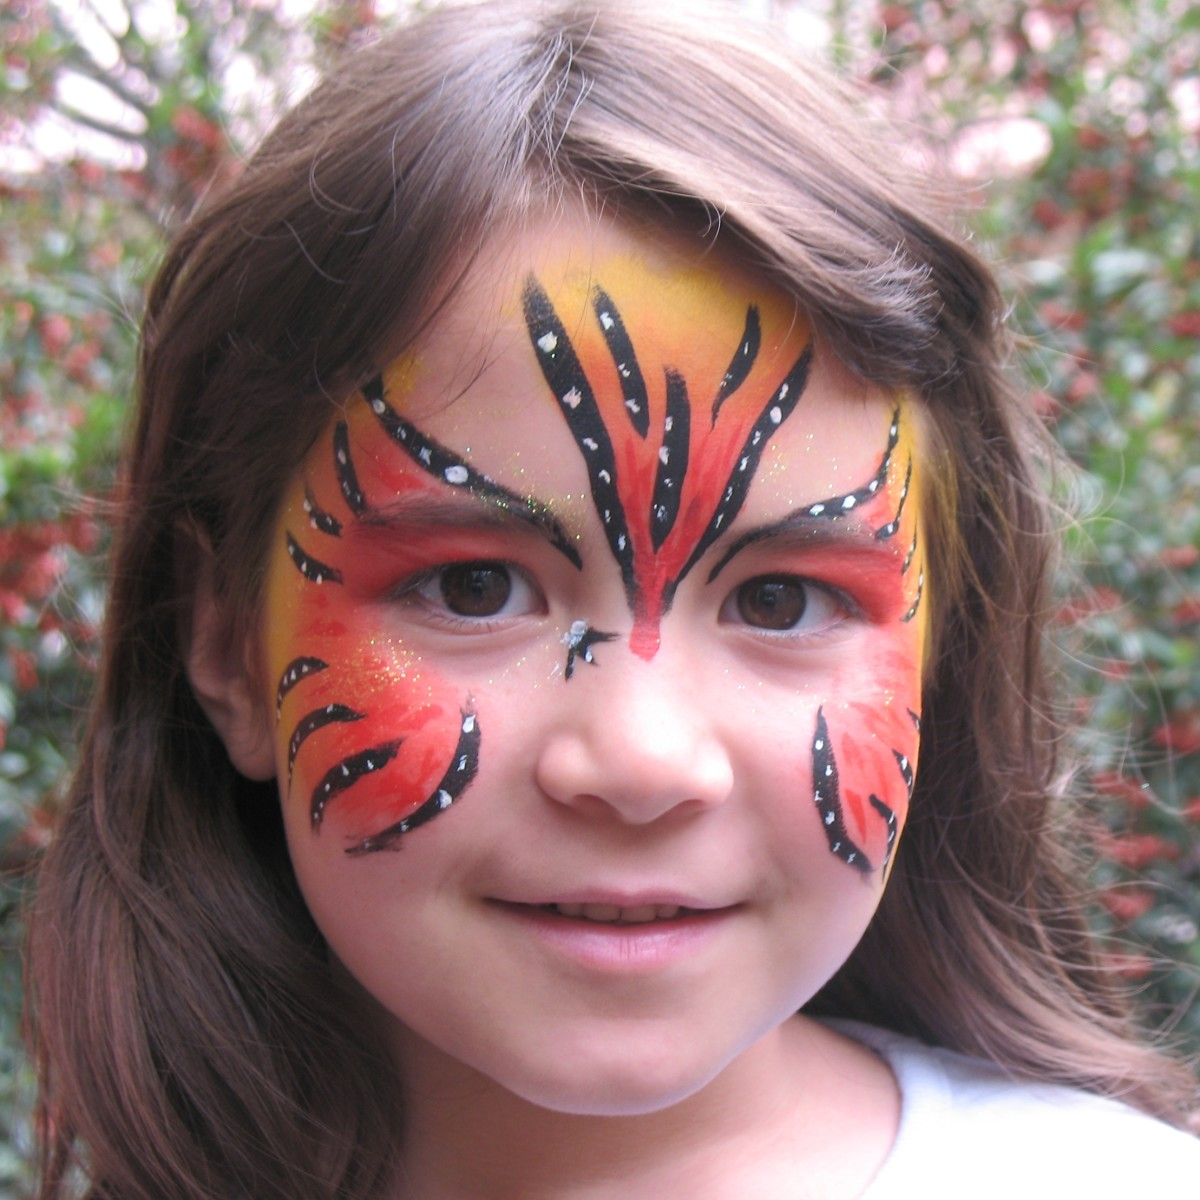 be creative and make your own face paint and use to add a bit of fun to makeup for your kids.